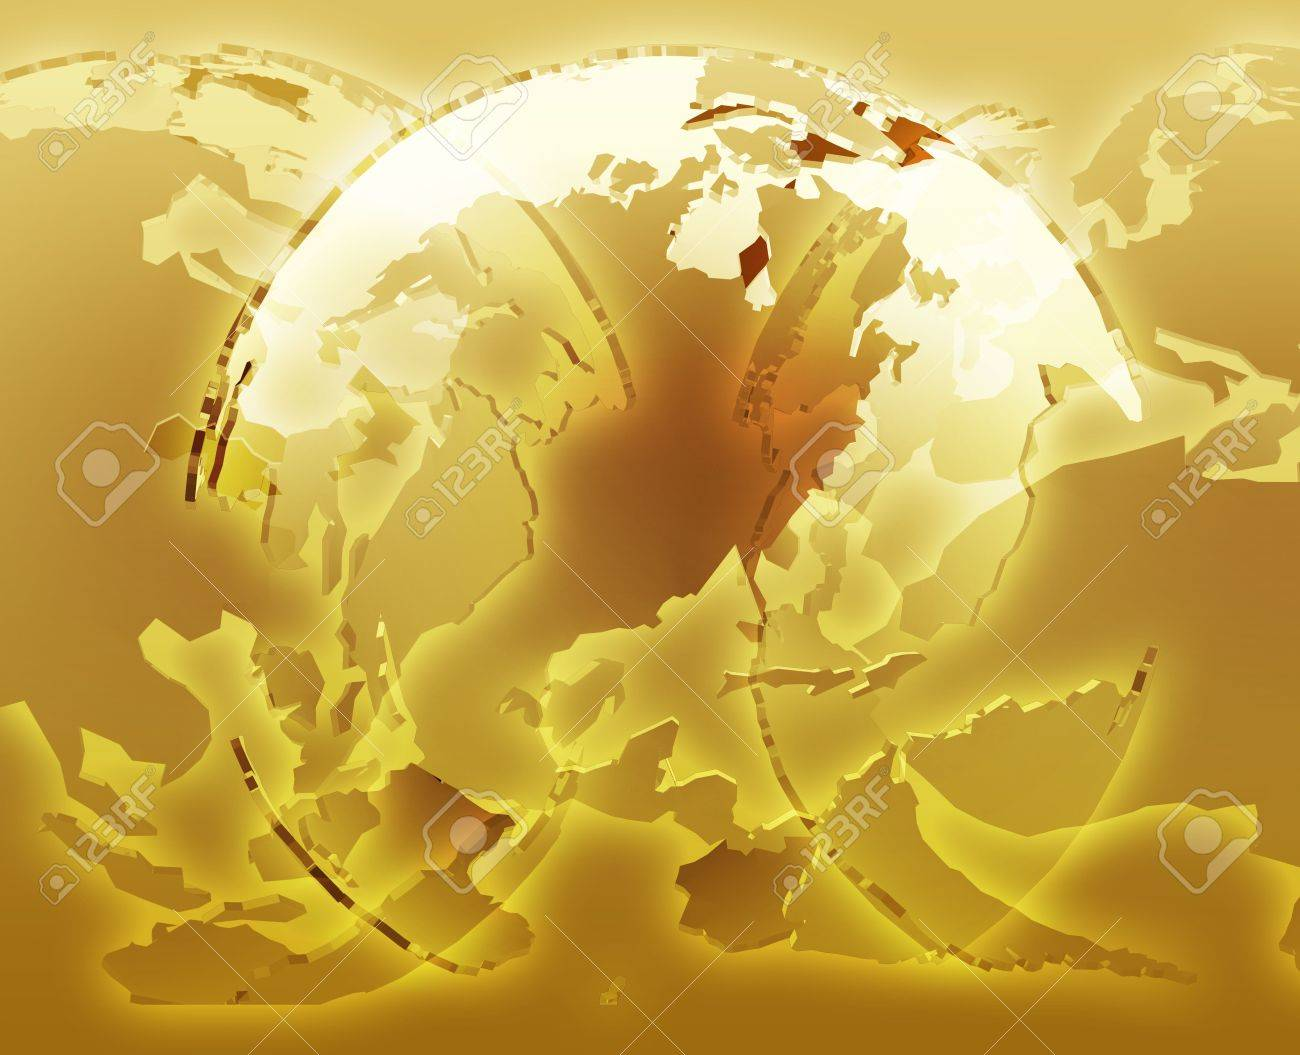 Glowing Translucent World Map Globes  Americas  Asia  Europe     Glowing translucent world map globes  Americas  Asia  Europe  Africa Stock  Photo